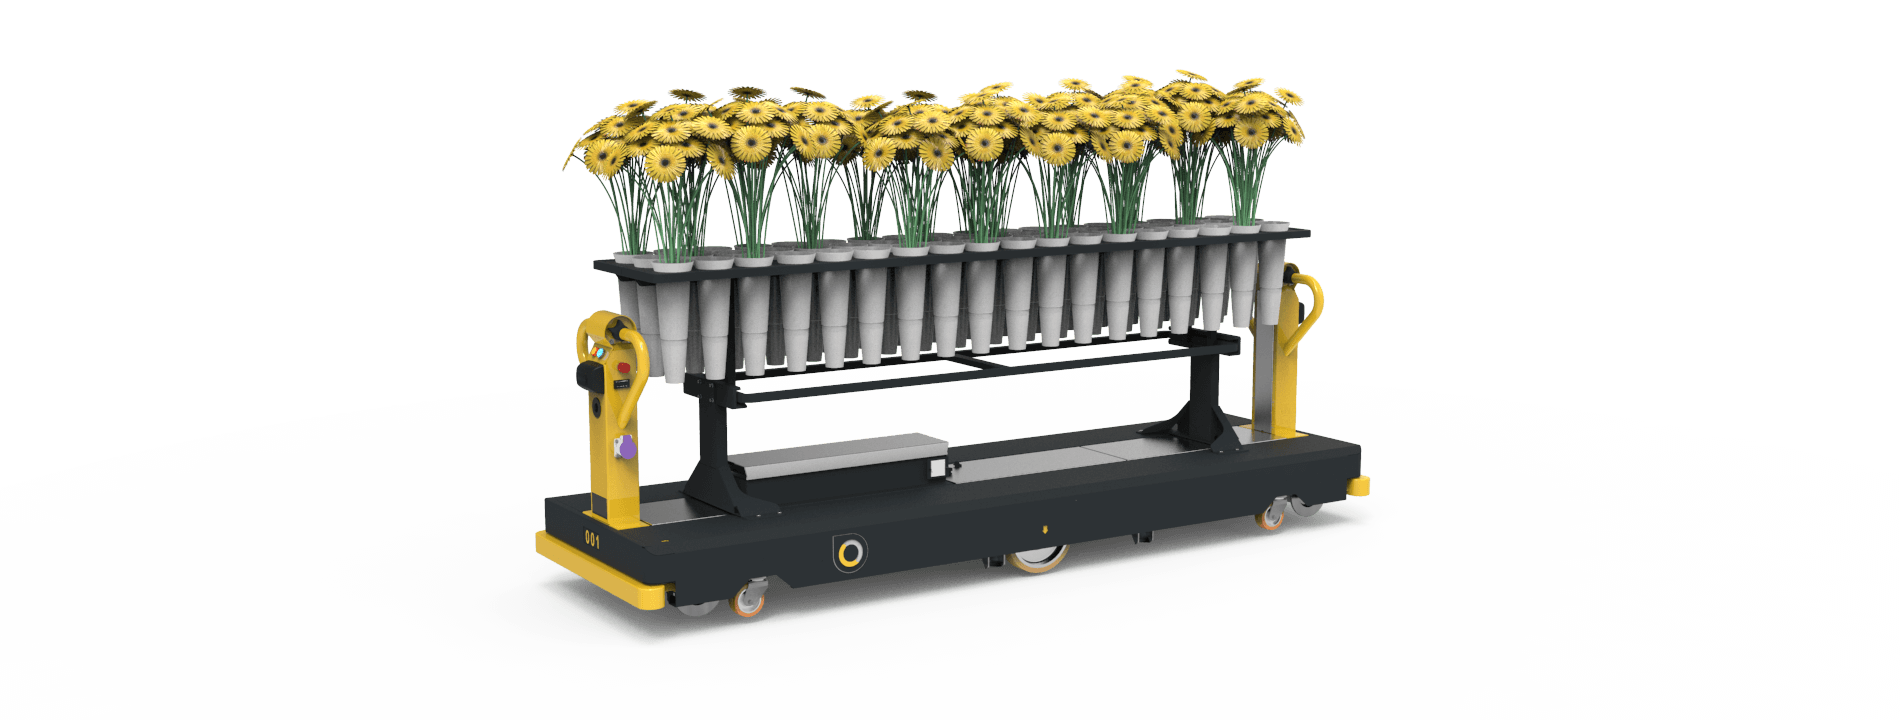 Qii-Drive Flower AGV flower harvesting machine with vases